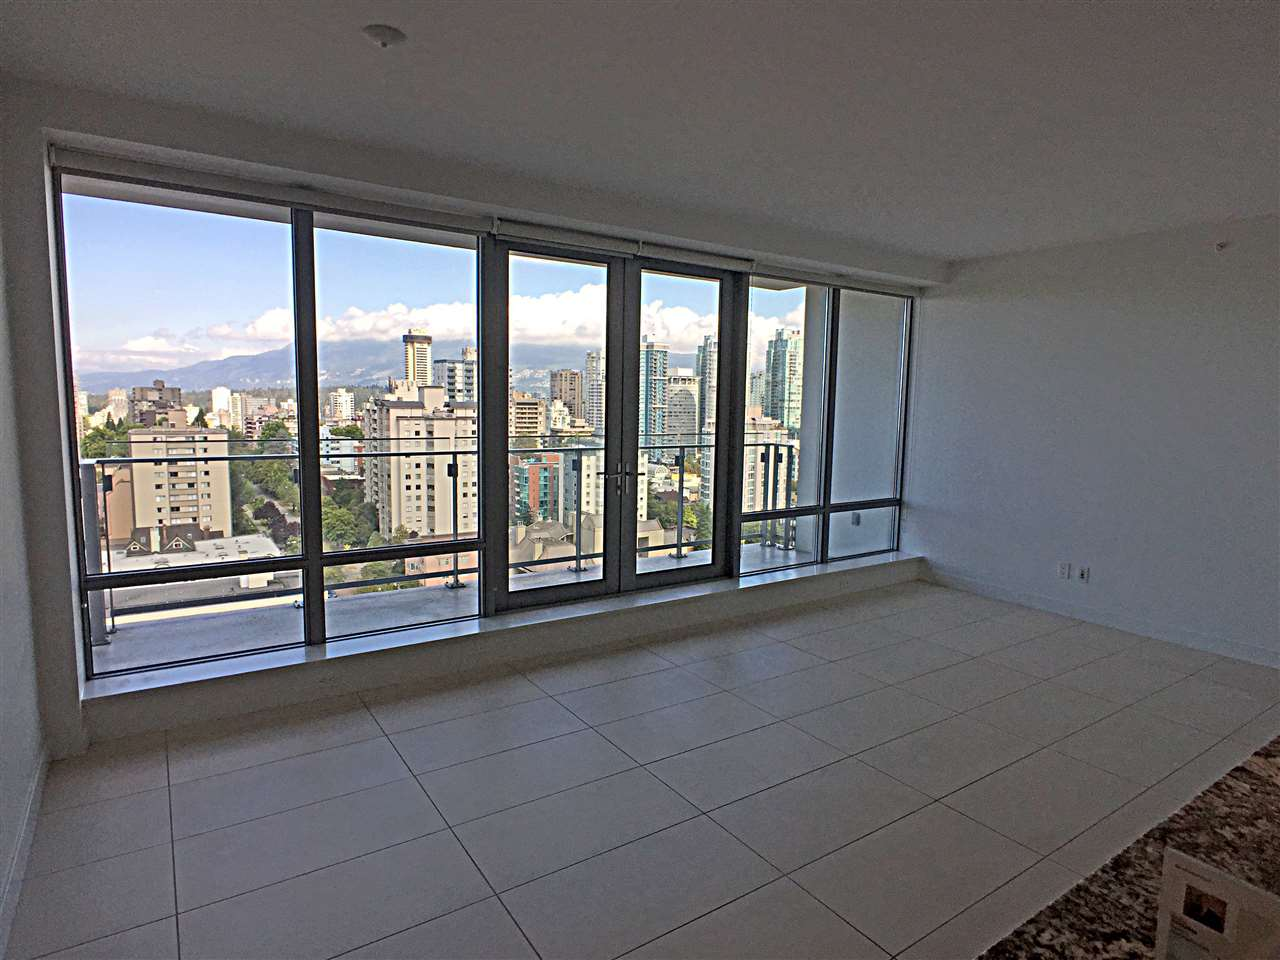 Photo 9: 1805 1028 BARCLAY STREET in Vancouver: West End VW Condo for sale (Vancouver West)  : MLS® # R2096950